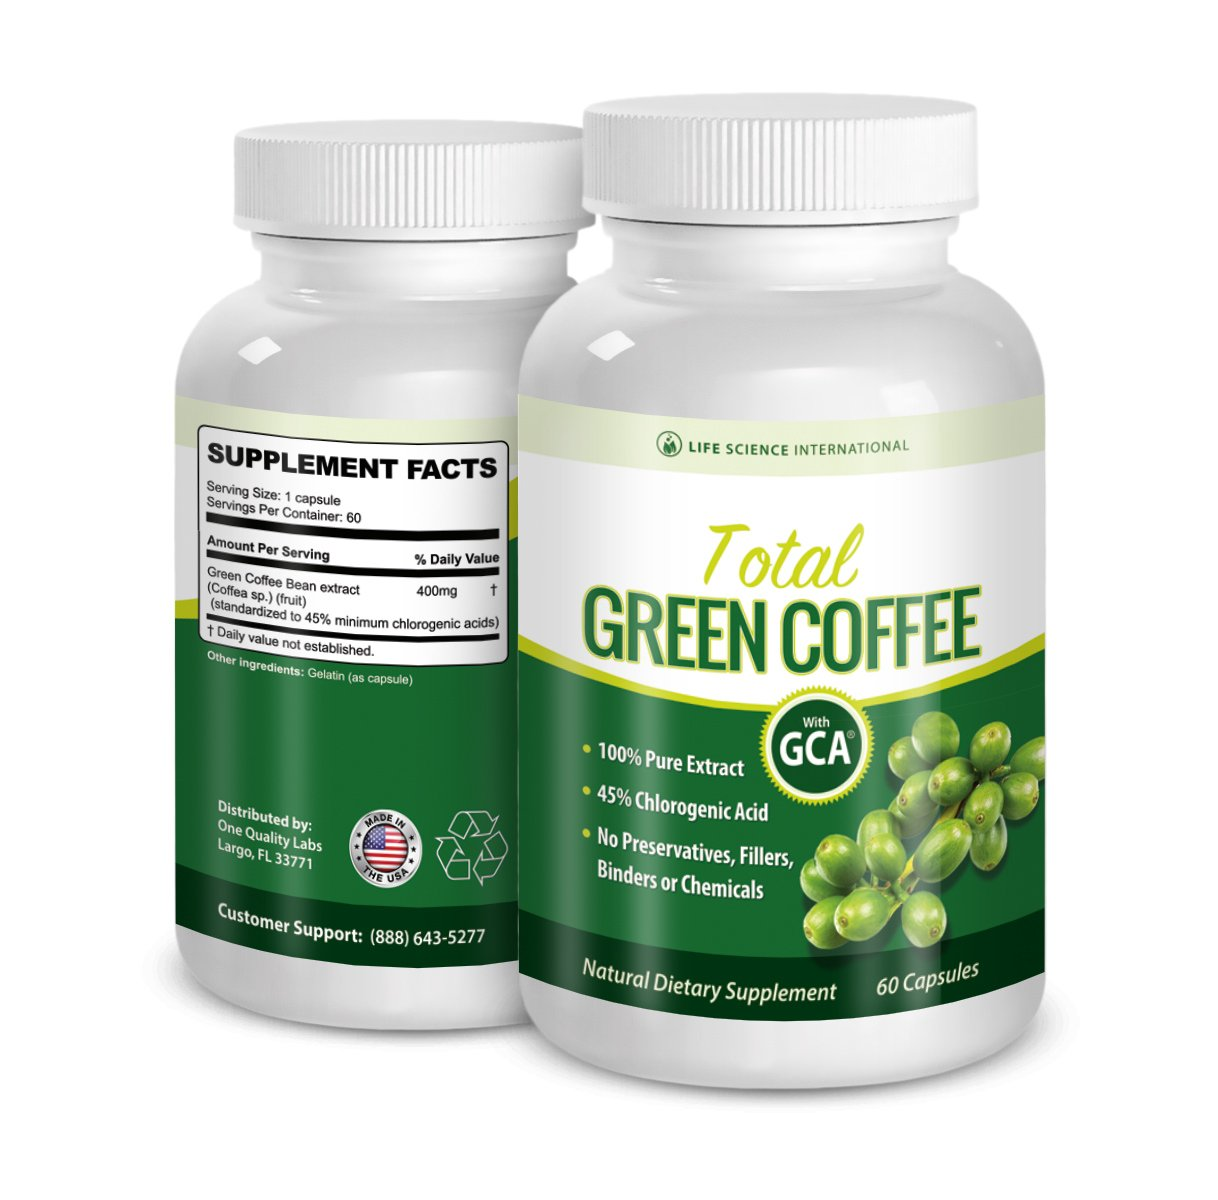 Green Coffee Diet Pills Total Green Coffee 100% Pure Extract - 60% Chlorogenic Acid Diet Pills, by Life Science International